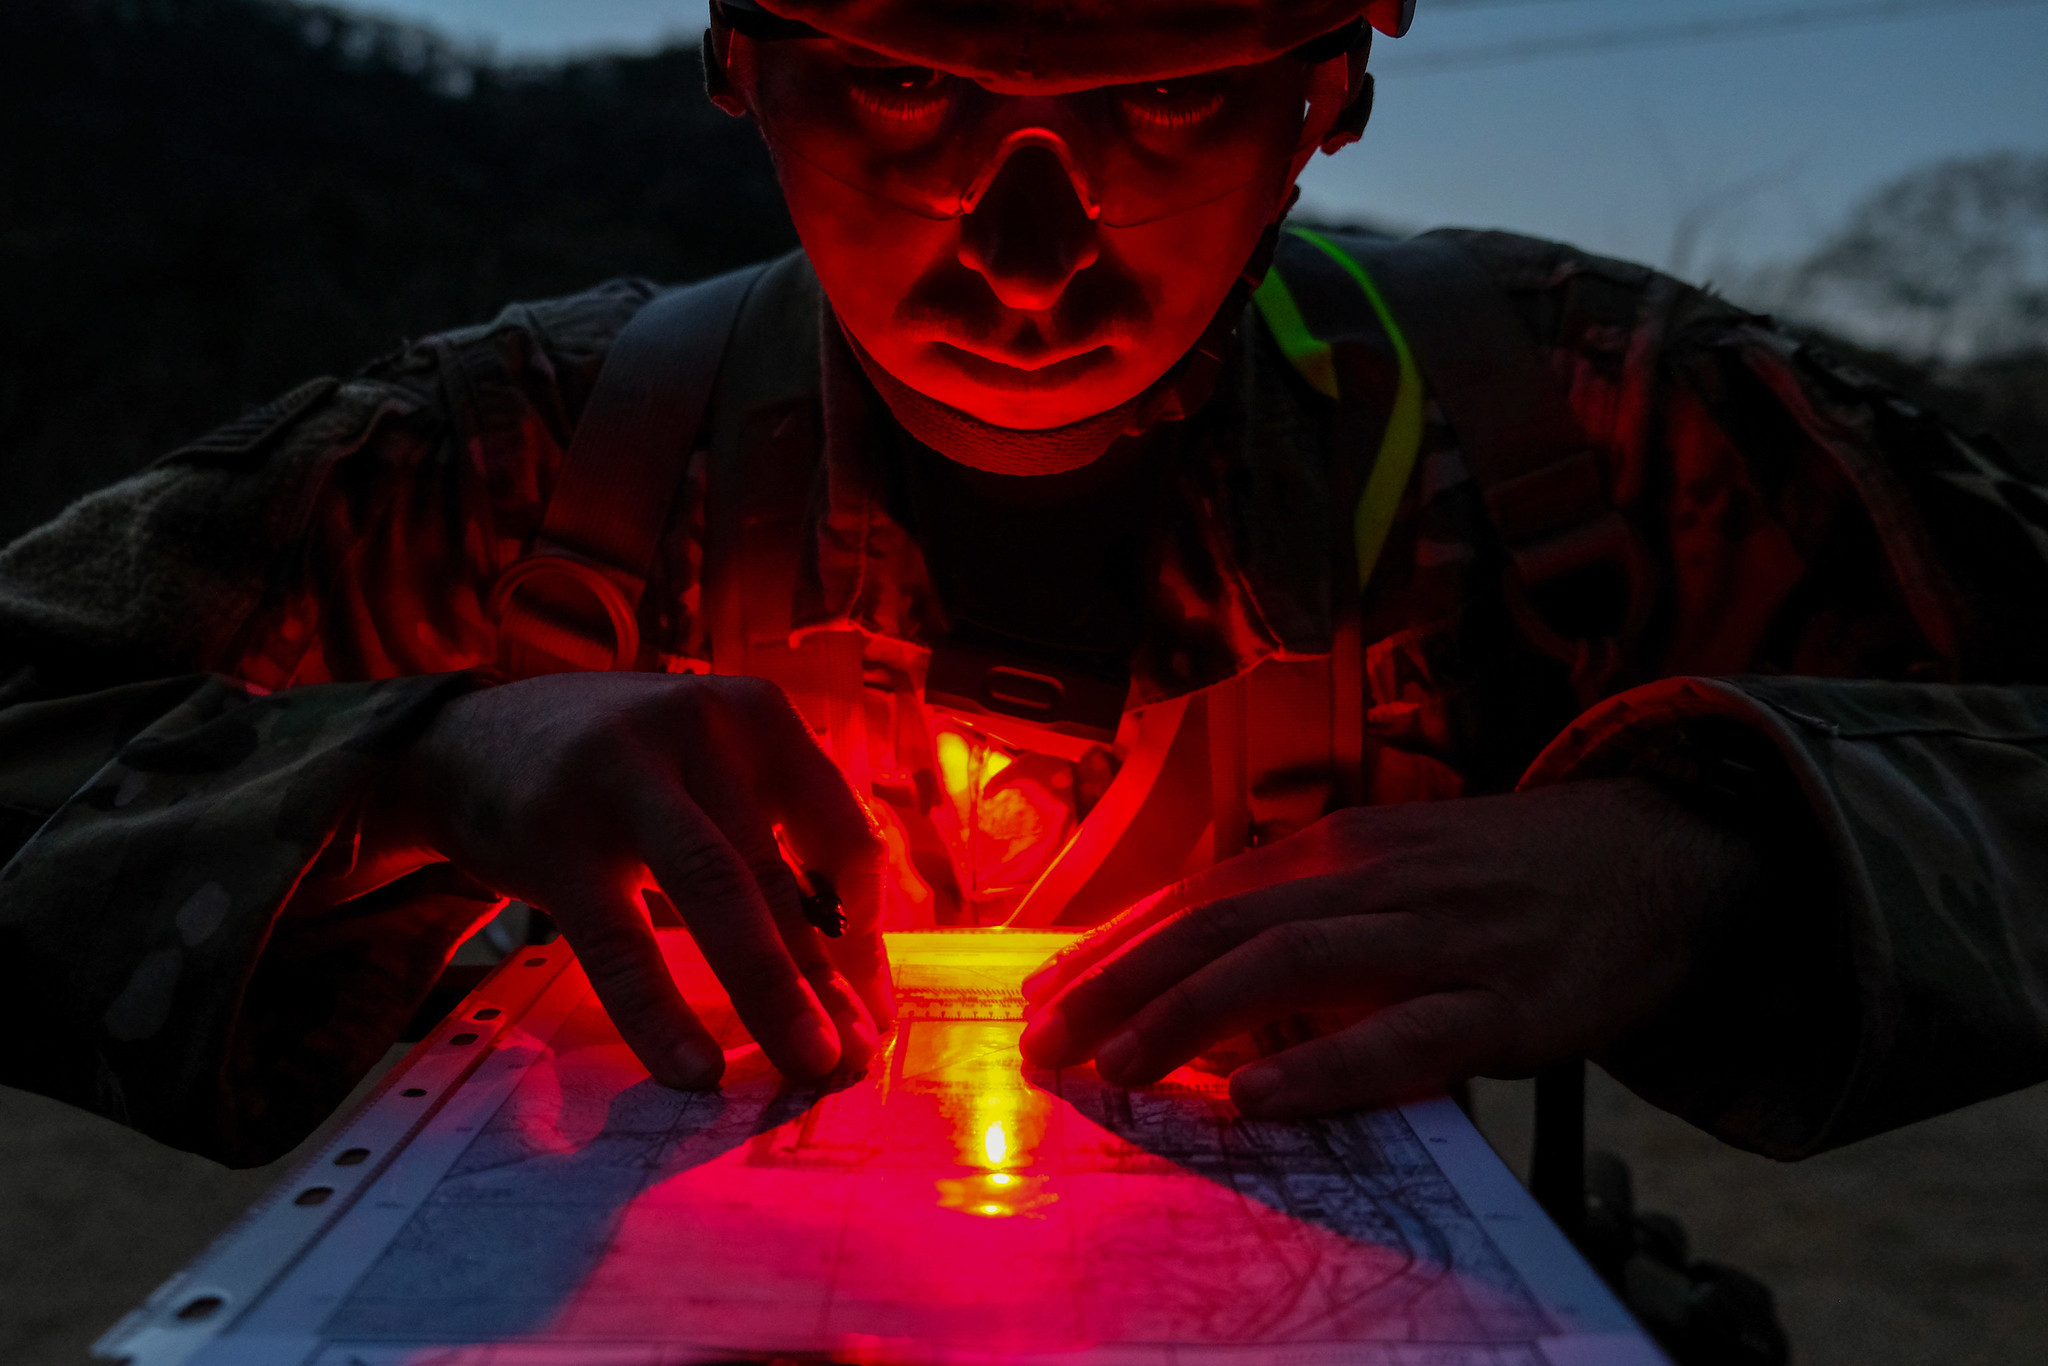 Army Staff Sgt. Symon Bowlen uses his red lens flashlight to plot points for night land navigation during the 2nd Infantry Division Best Warrior Competition at Camp Casey, Republic of Korea, April 17, 2019. (Capt. Daniel Parker/Army)